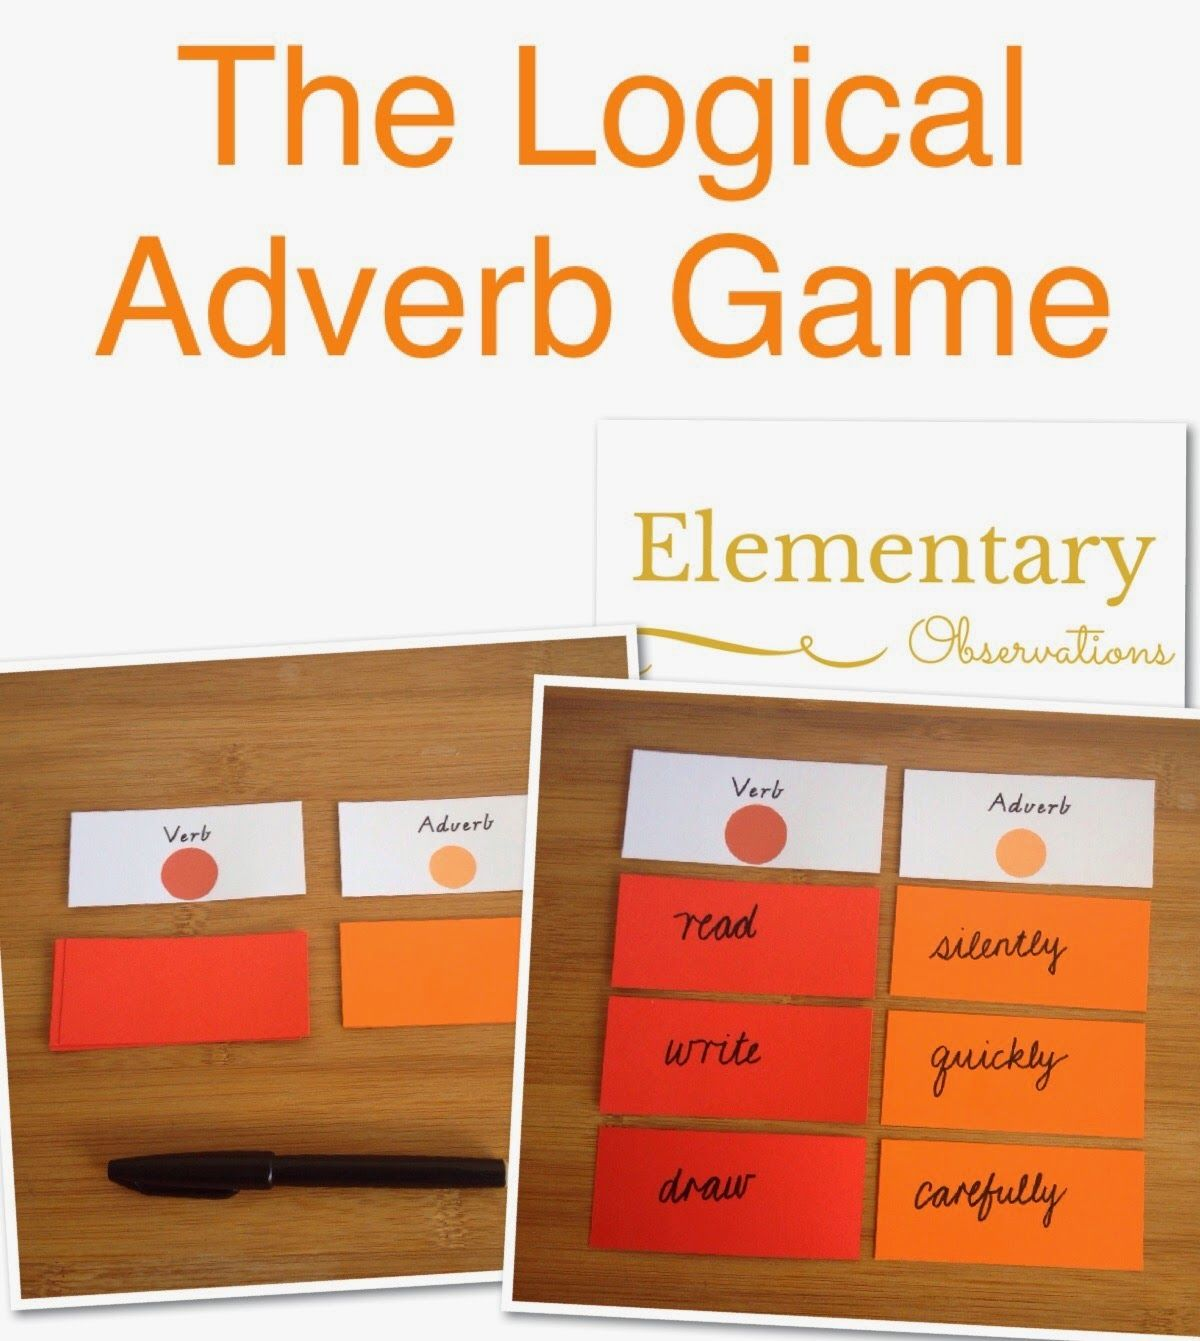 Worksheet Adverb Games For Kids 1000 images about grammar on pinterest